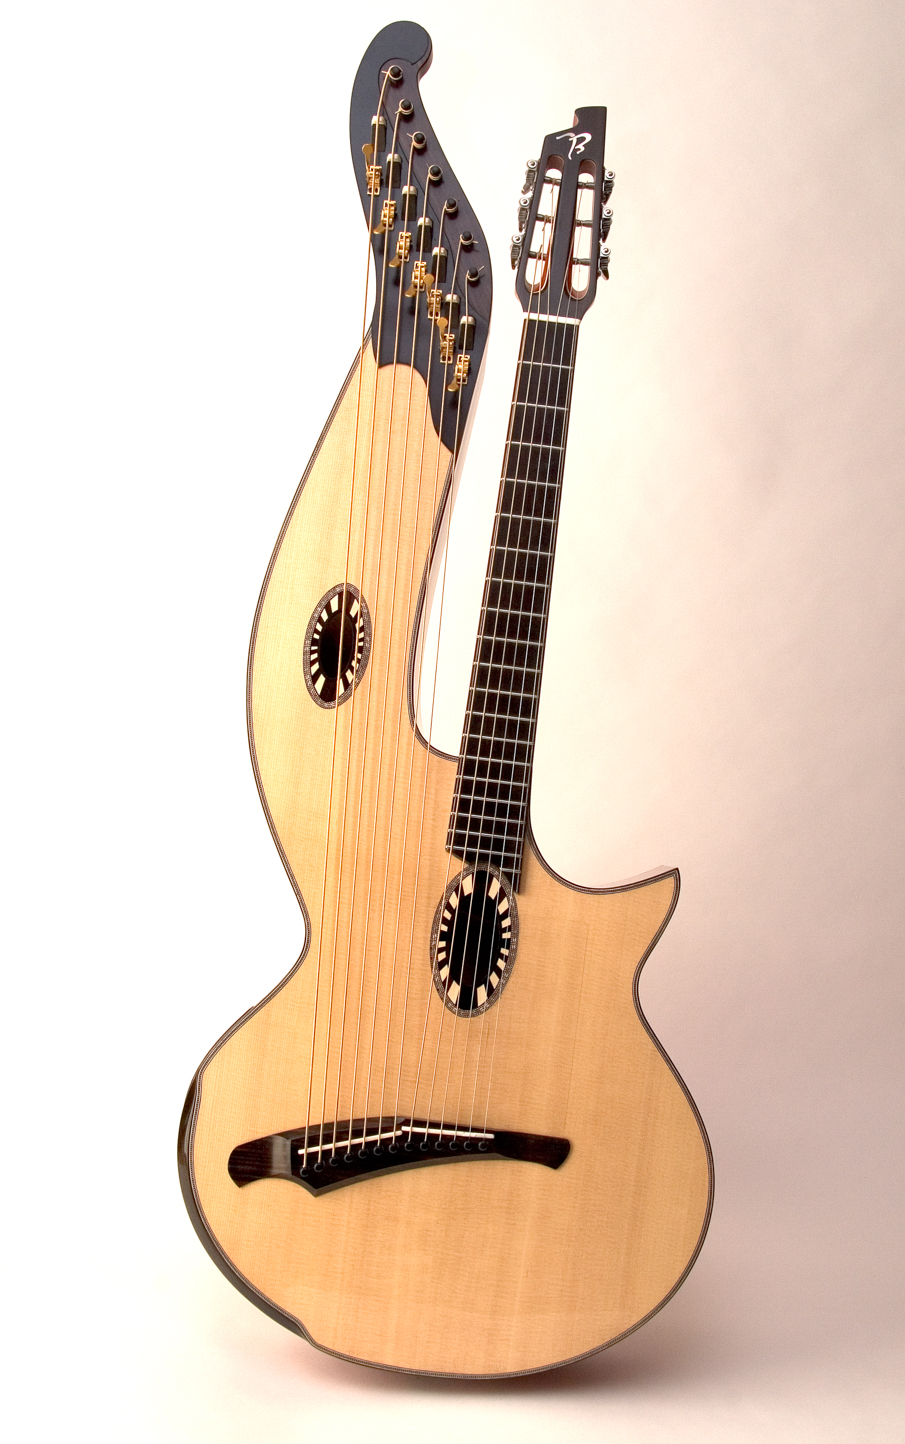 Florentine sharpie with slotted headstock (whoa...)